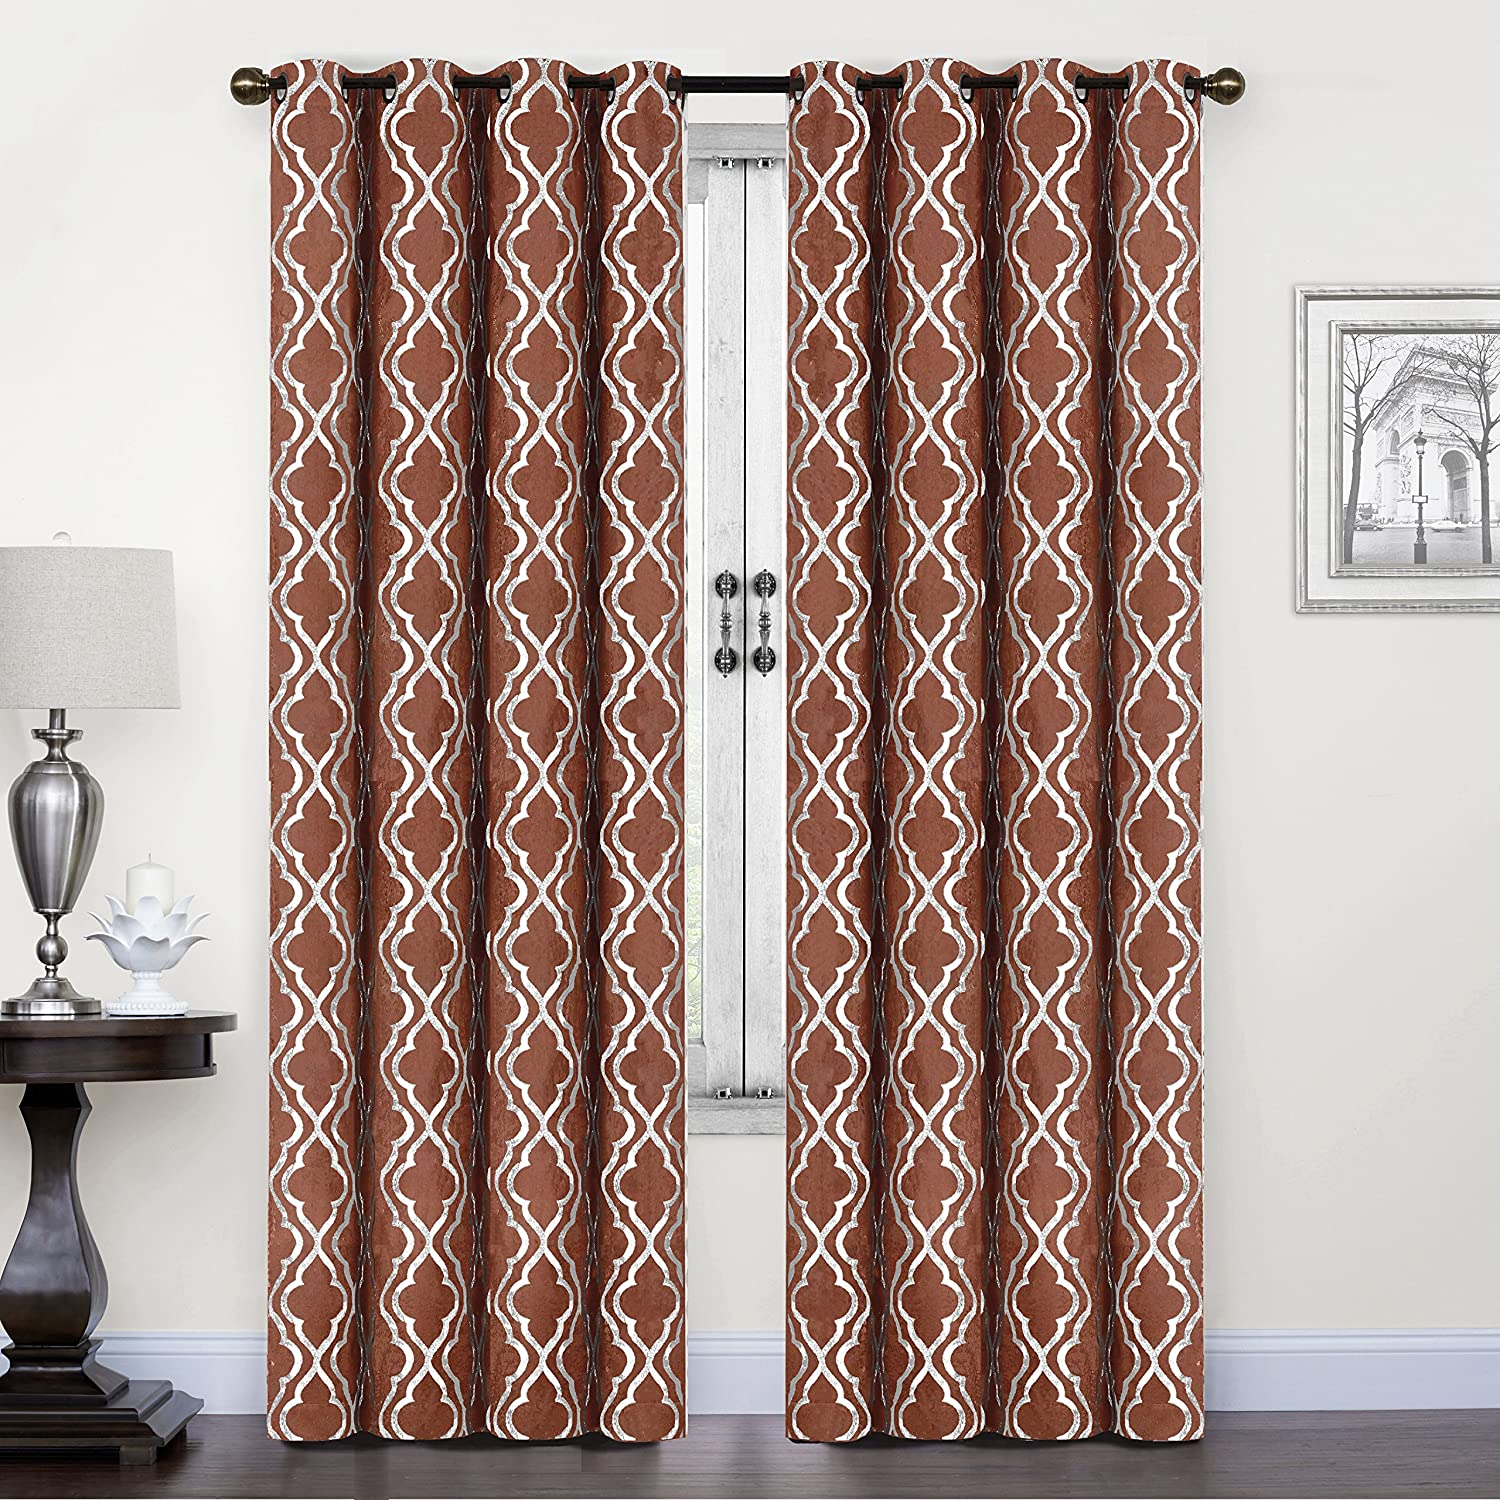 SUO AI TEXTILE Suede Like Treatment Room Darkening Thermal Insulated Grommet Window Curtains 2 Panels (37x84,Aqua) FUMILY